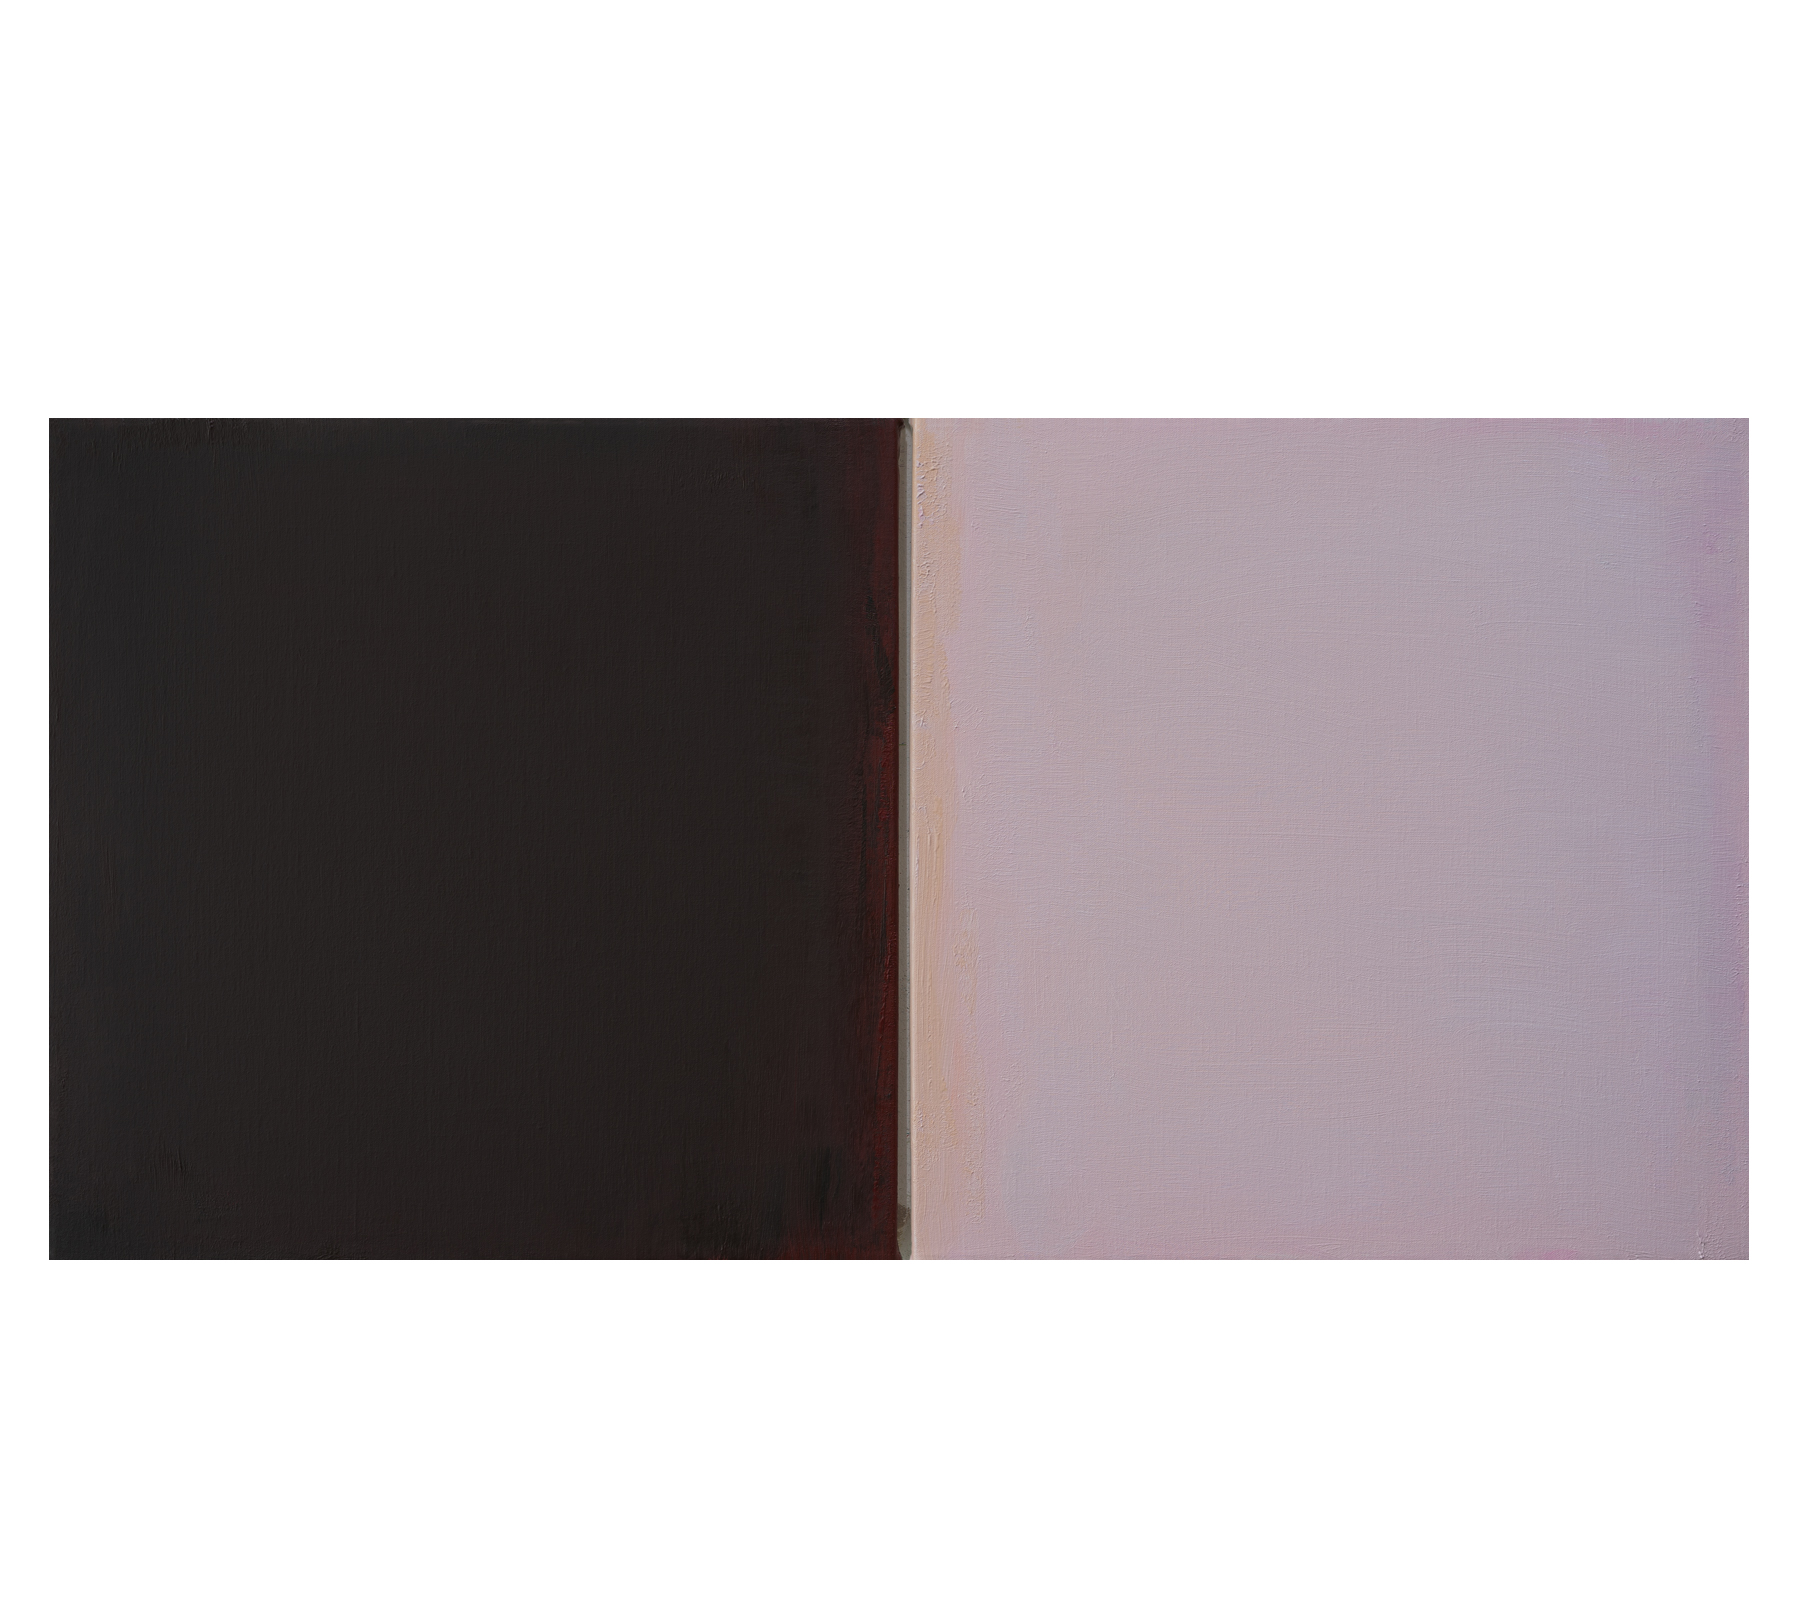 Untitled diptych 2018 50x100cm